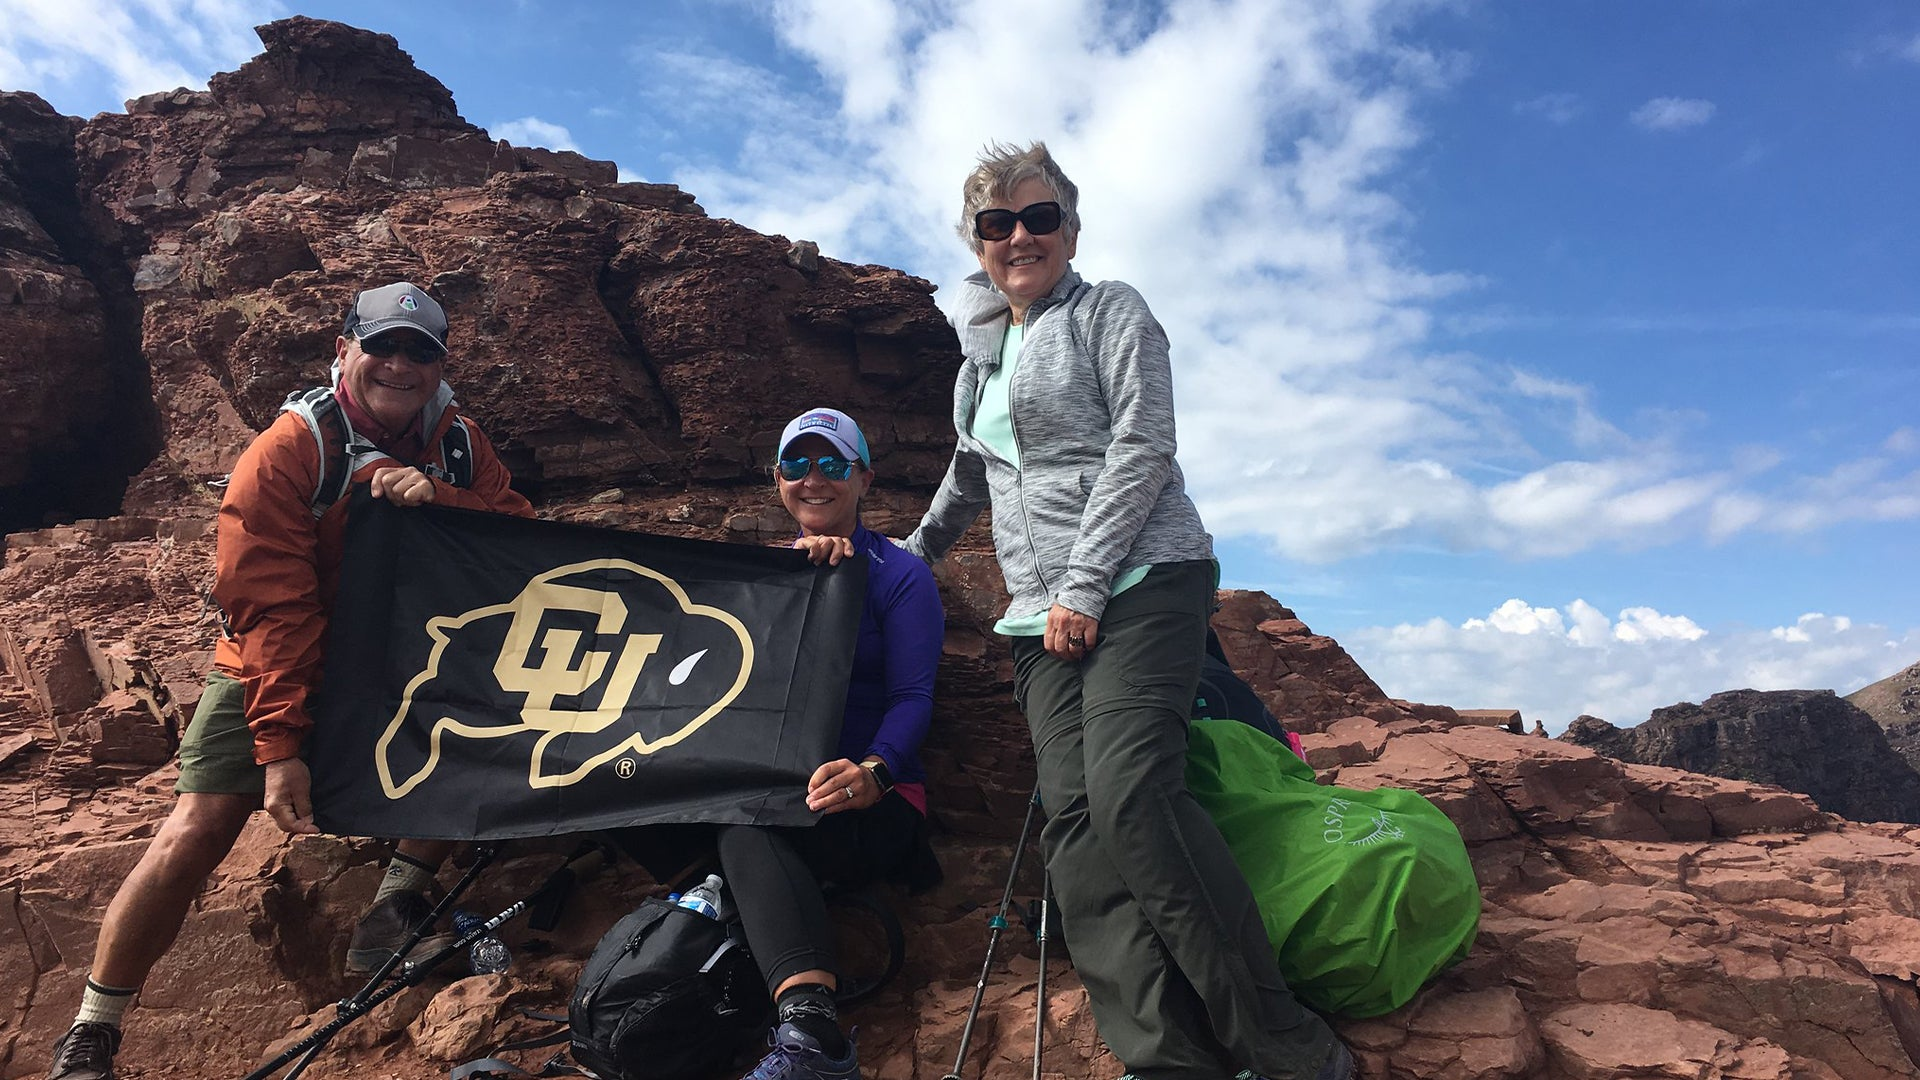 A group of alumni with a CU Bouder flag on a mountaintop